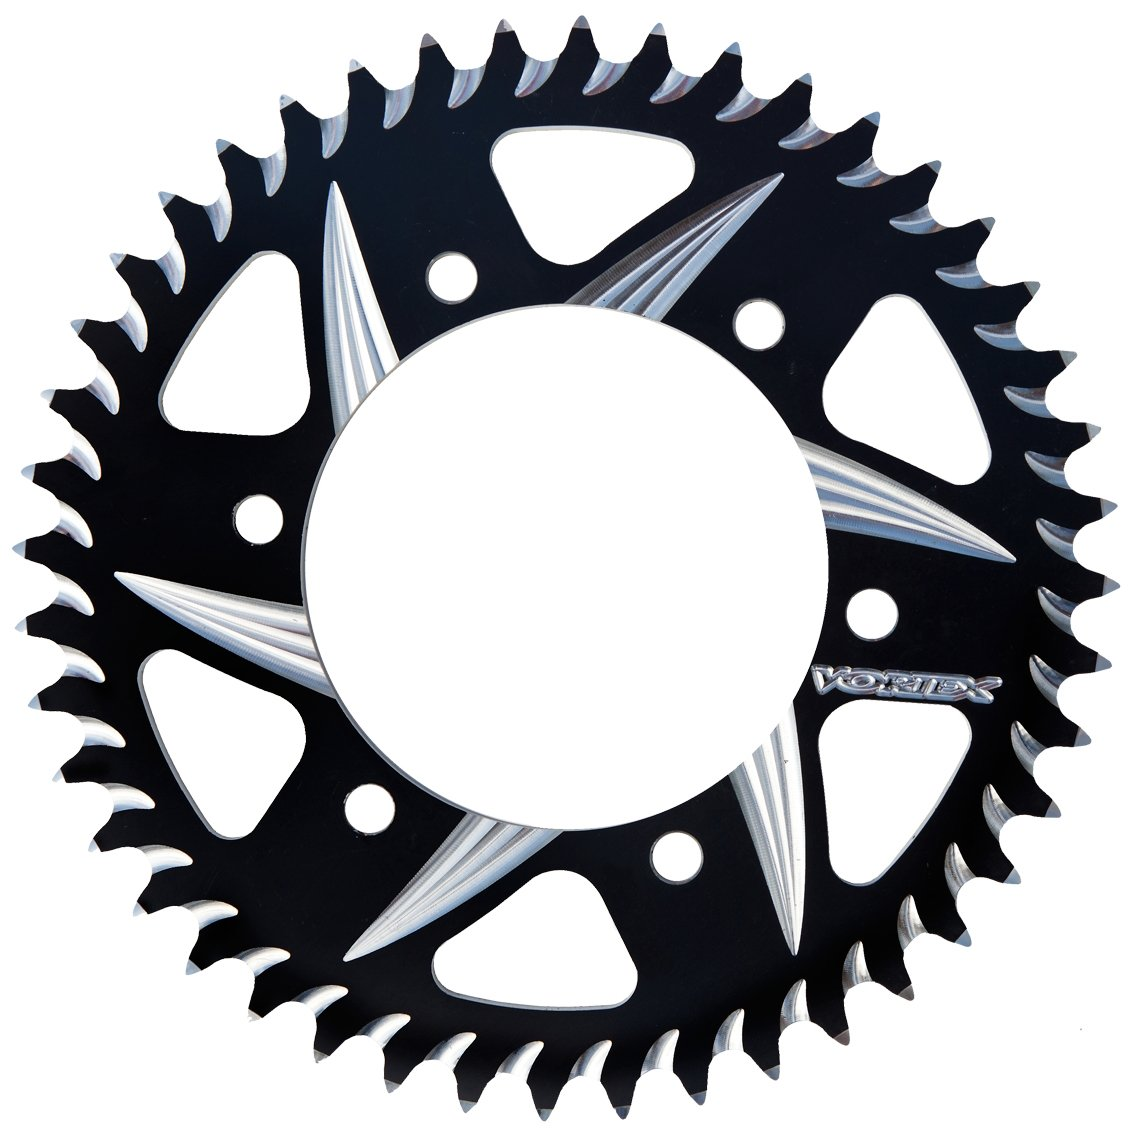 Vortex 435ZK-41 Black 41-Tooth 520-Pitch Rear Sprocket Vortex Racing